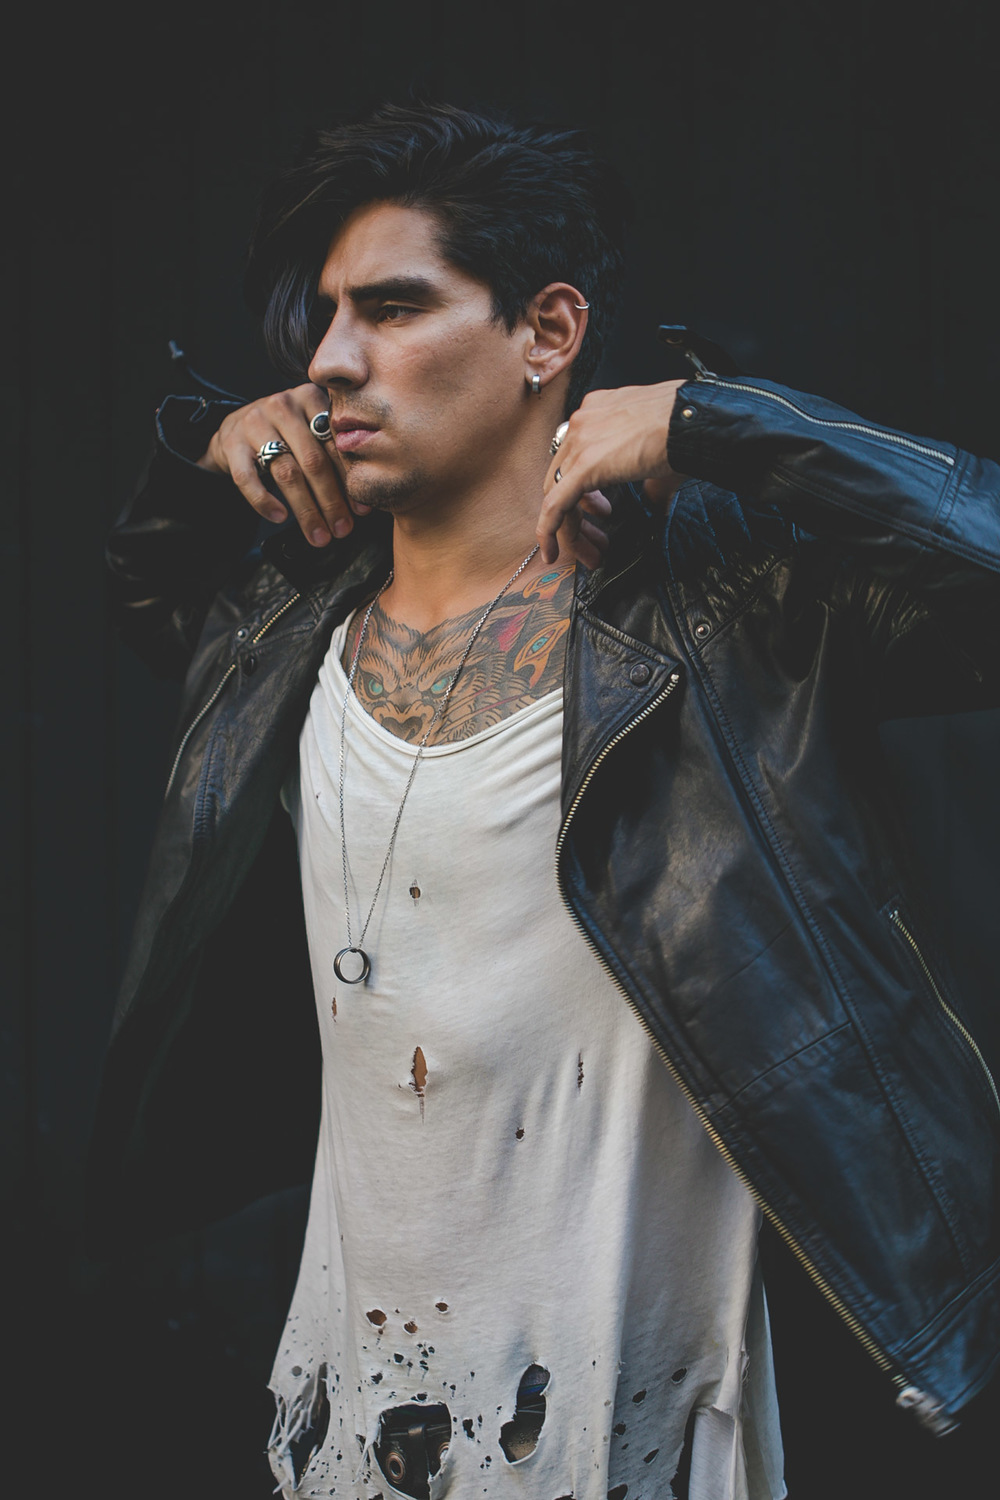 leather - tattoos - menswear